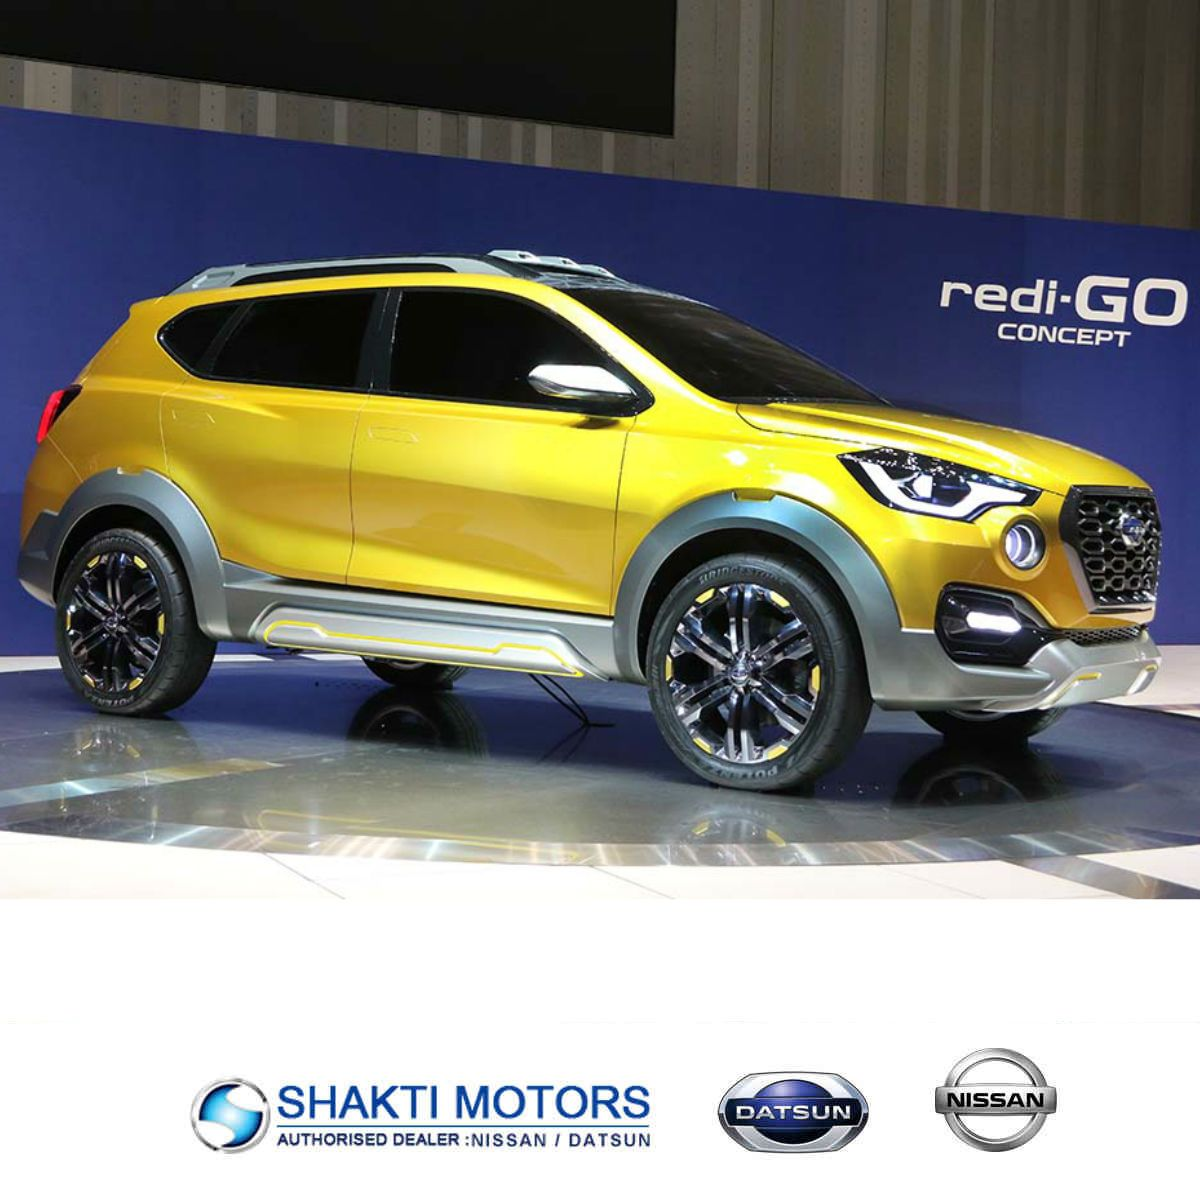 Another 2016 Auto Expo Debutant, the DatsunGOCross is